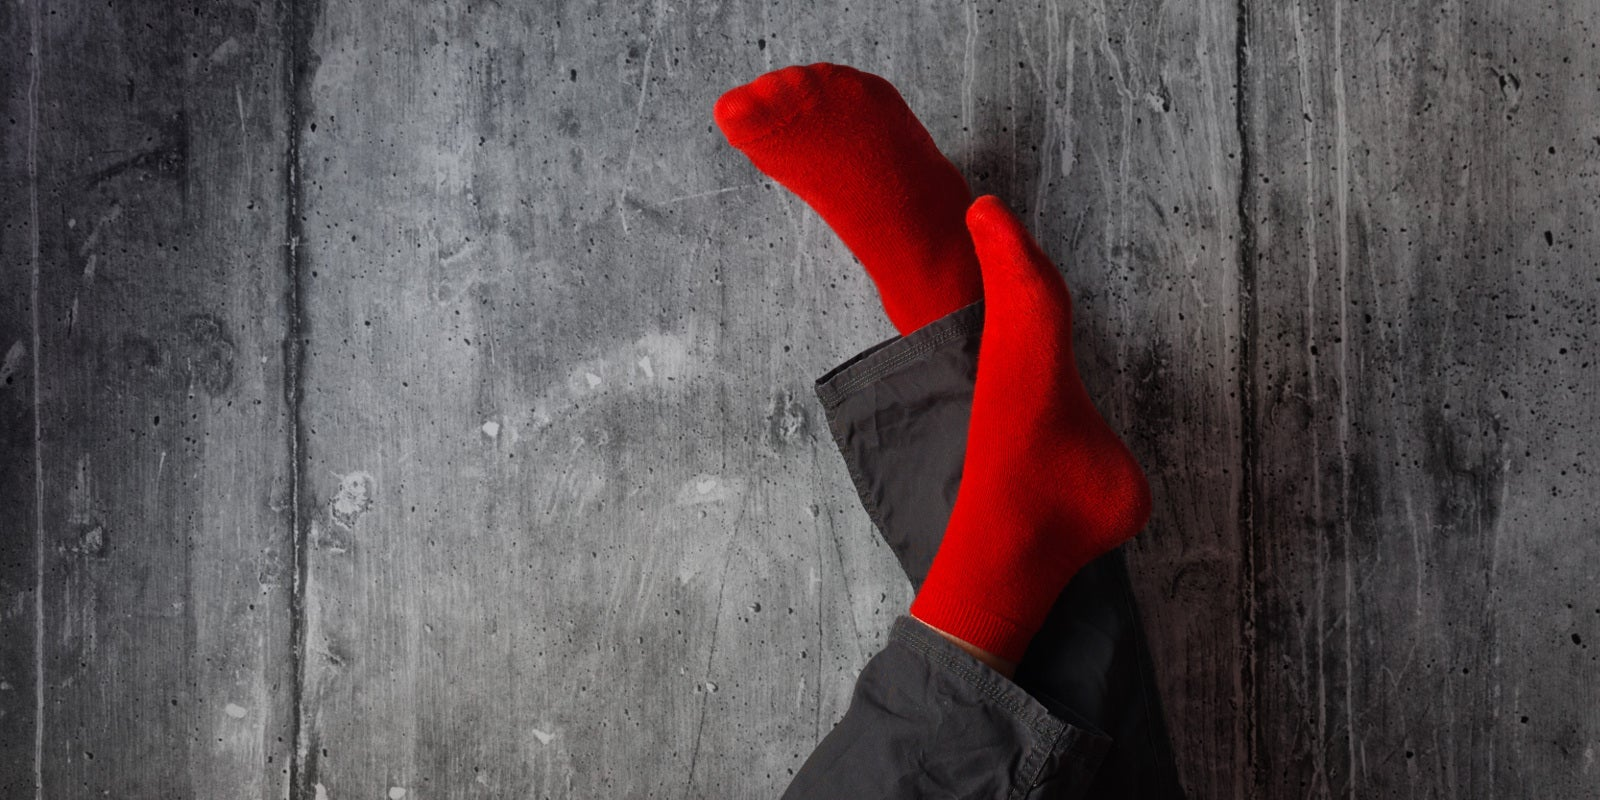 Researchers Have Made Socks That Use Urine To Create Electricity